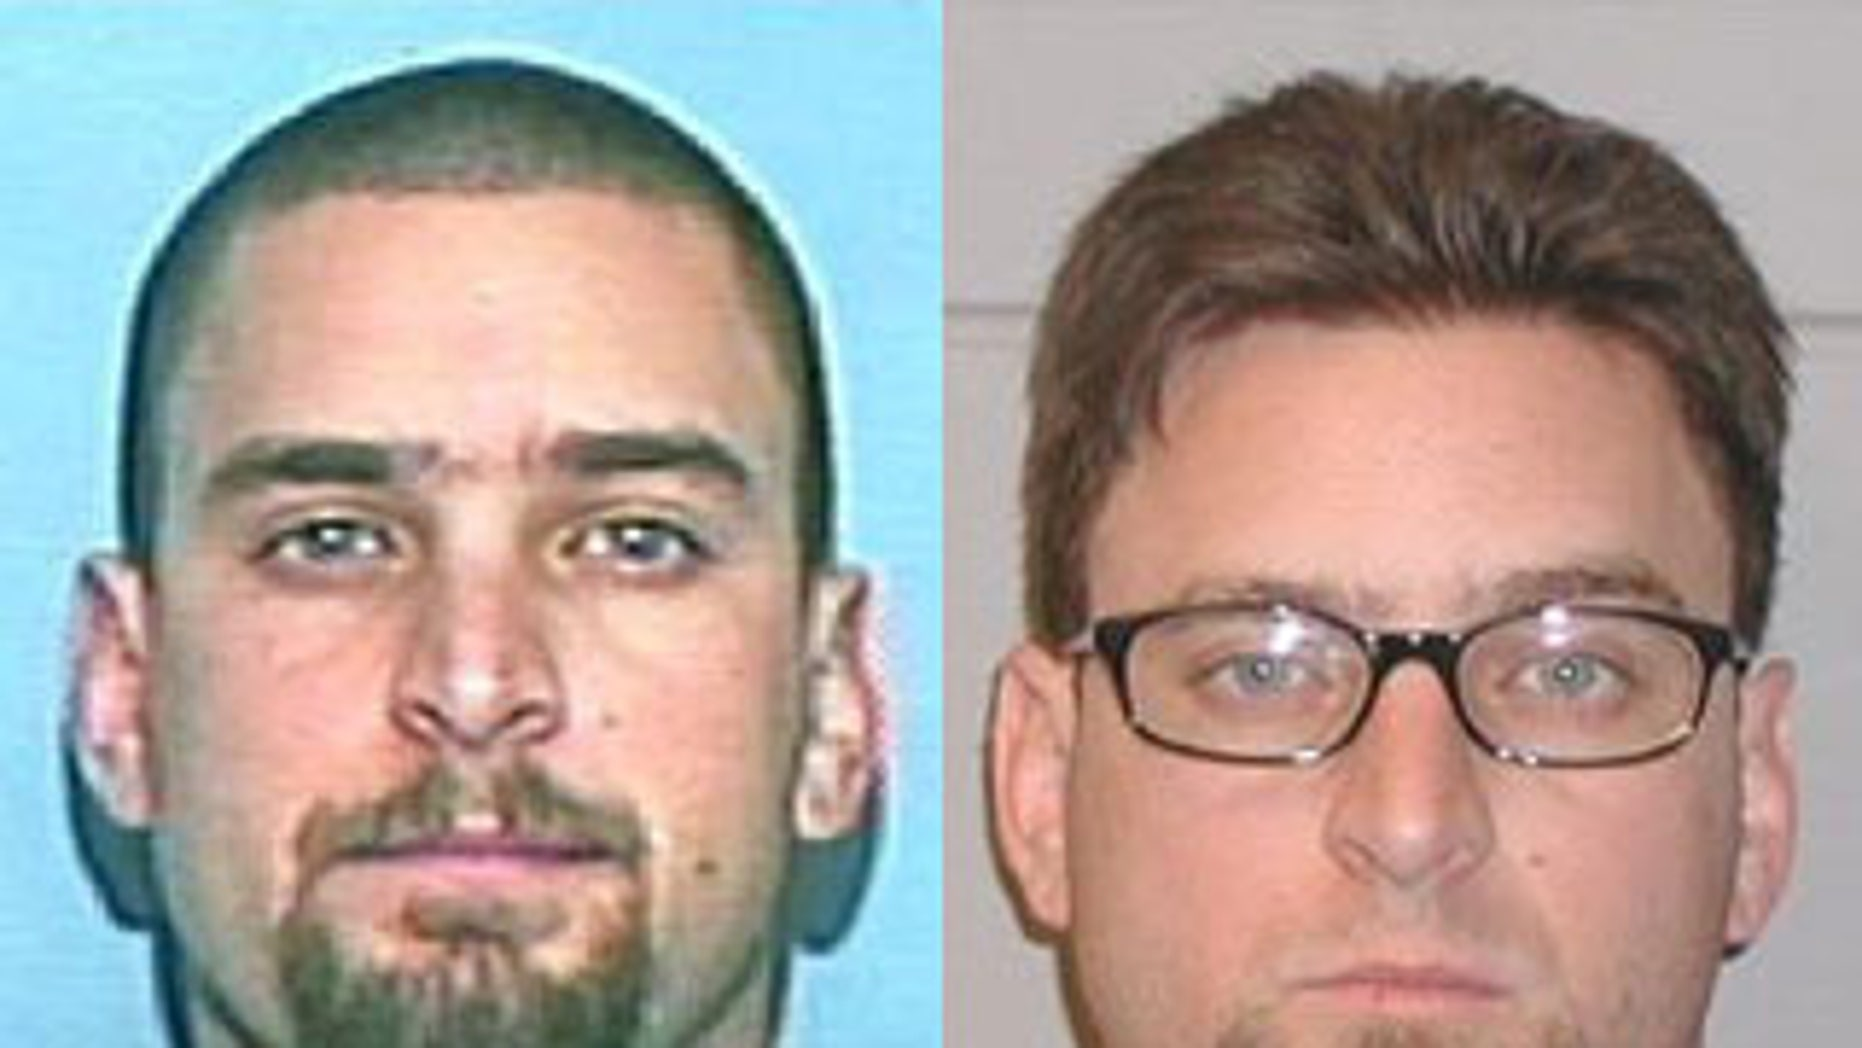 Paul Merle Eischeid, a member of the Hells Angels Motorcycle Club and one of the U.S. Marshals 15 Most Wanted Fugitives who was captured Thursday in Argentina.